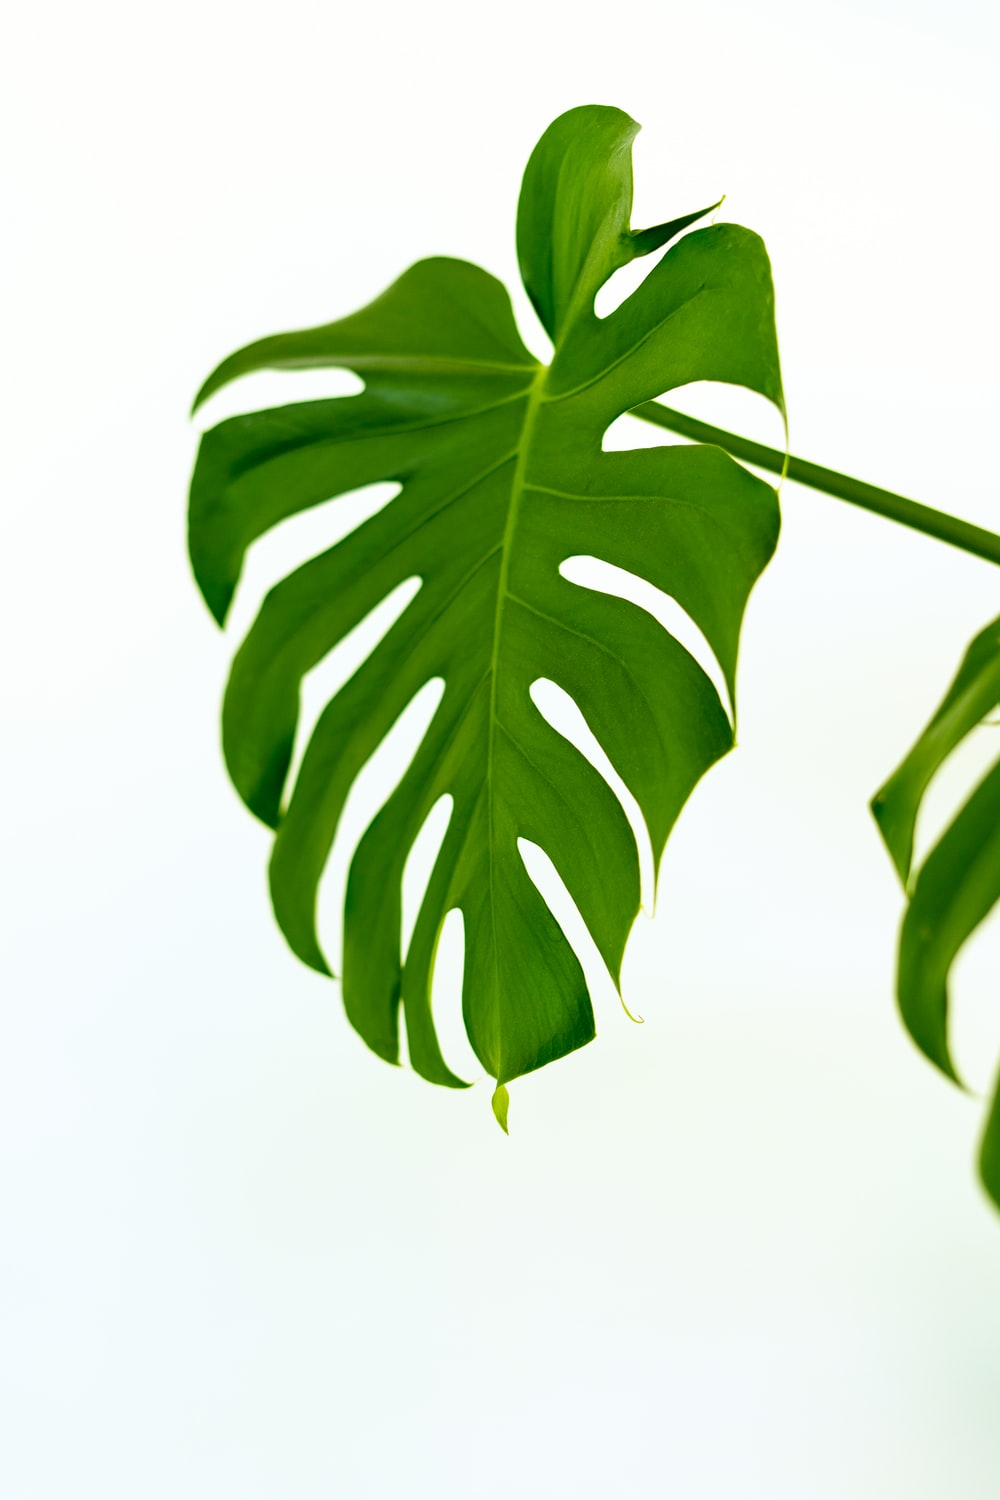 900 Leaf Background Images Download Hd Backgrounds On Unsplash They can be used as wallpaper for your desktop, a screensaver for your mobile phone, a template for congratulations. 900 leaf background images download